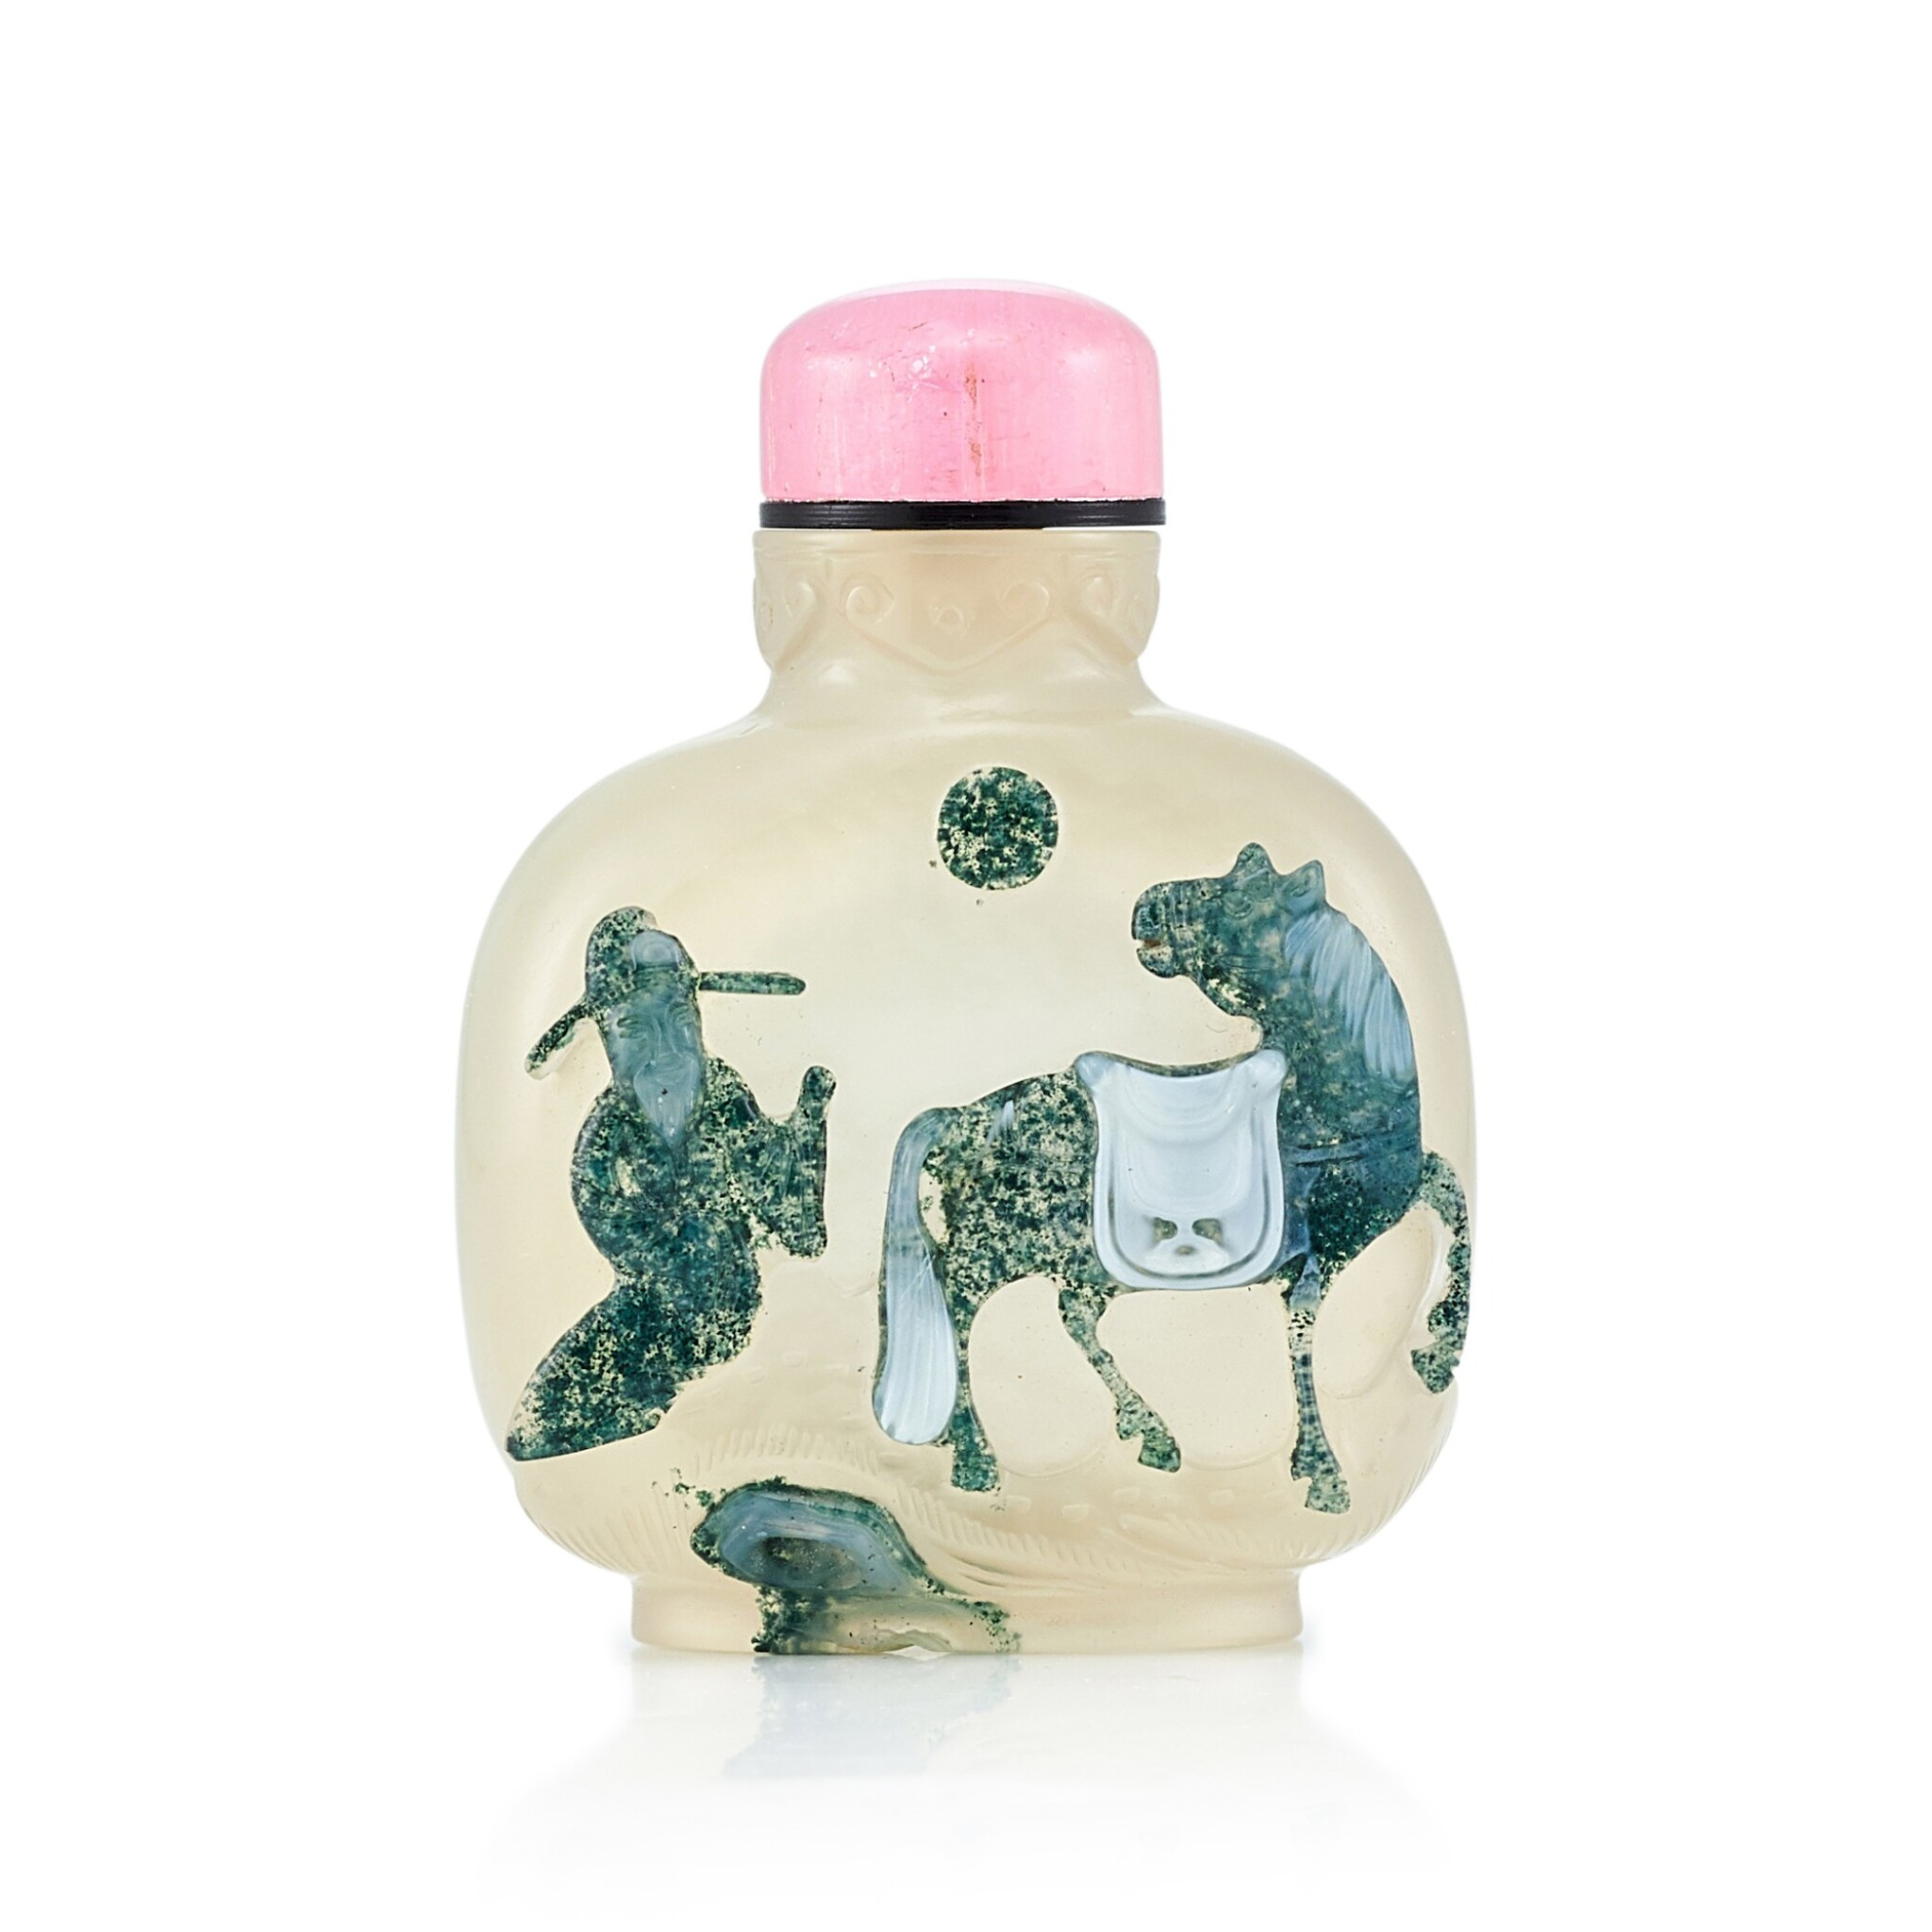 View full screen - View 1 of Lot 3038. An Agate 'Horse' Snuff Bottle Qing Dynasty, 18th - 19th Century | 清十八至十九世紀 瑪瑙巧雕人物駿馬圖鼻煙壺.